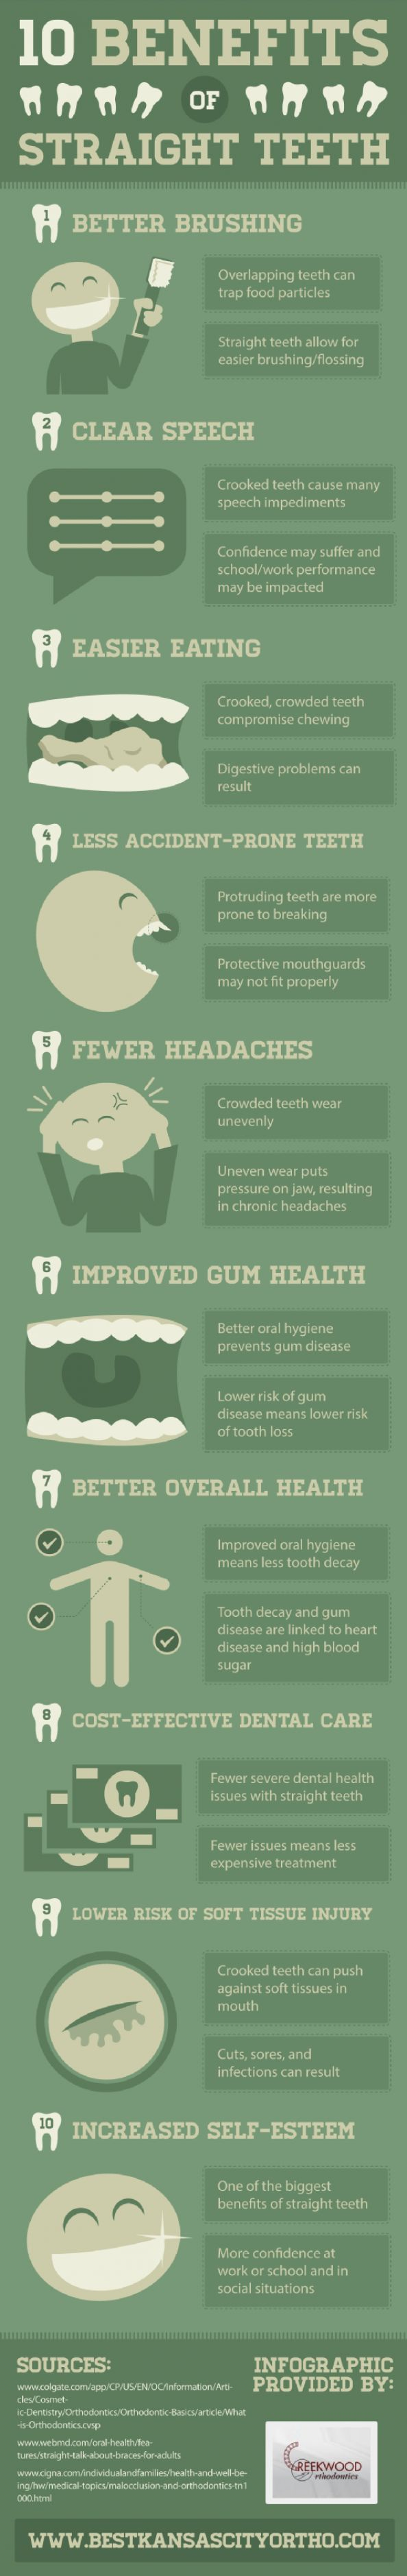 112 best About TEETH and BRACES! images on Pinterest | Dental ...